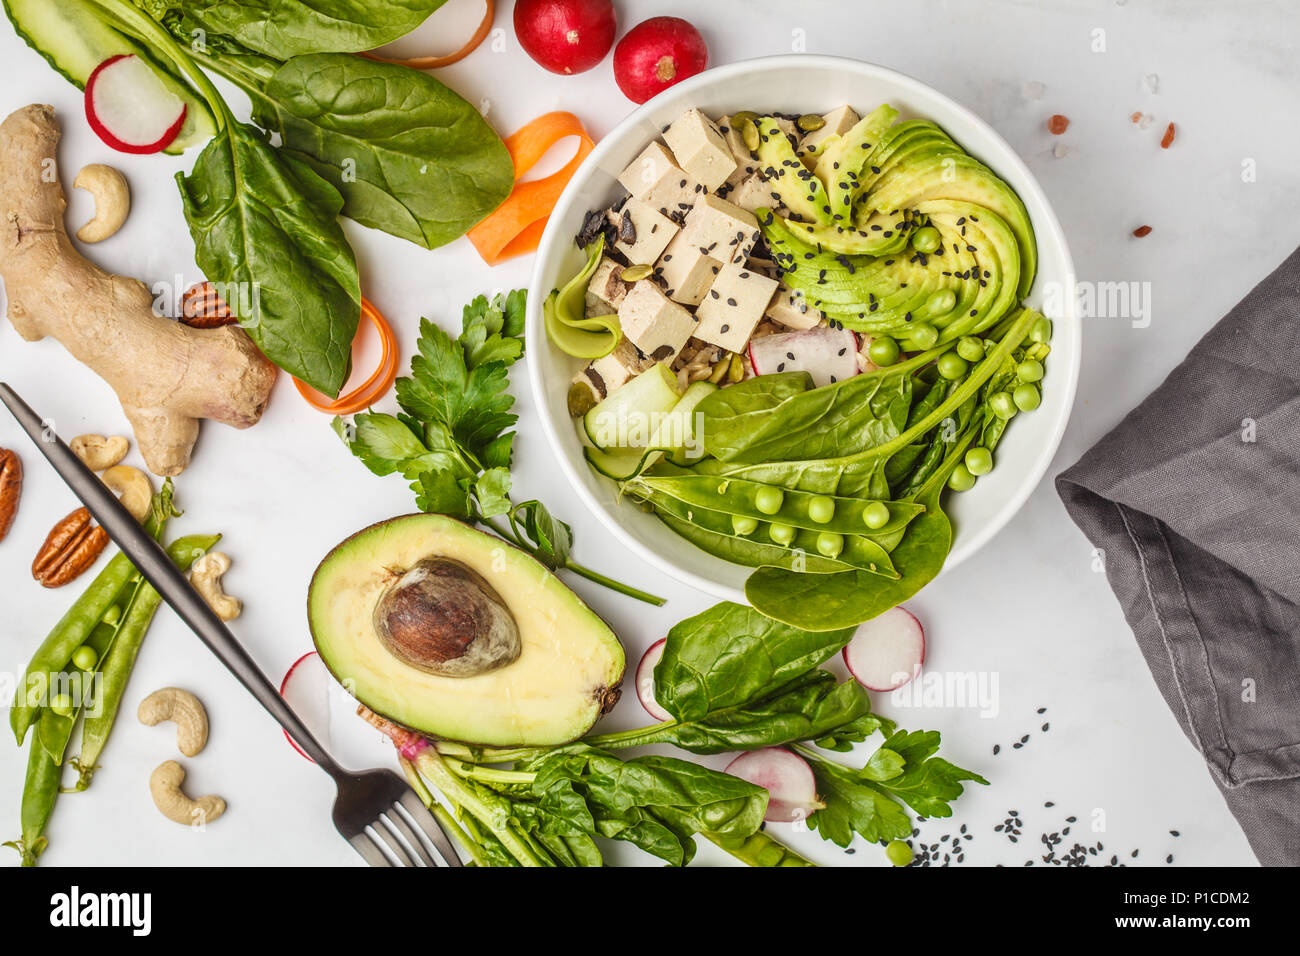 Healthy food flat lay. Buddha bowl with tofu, rice, avocado and vegetables. Healthy vegan food concept. - Stock Image